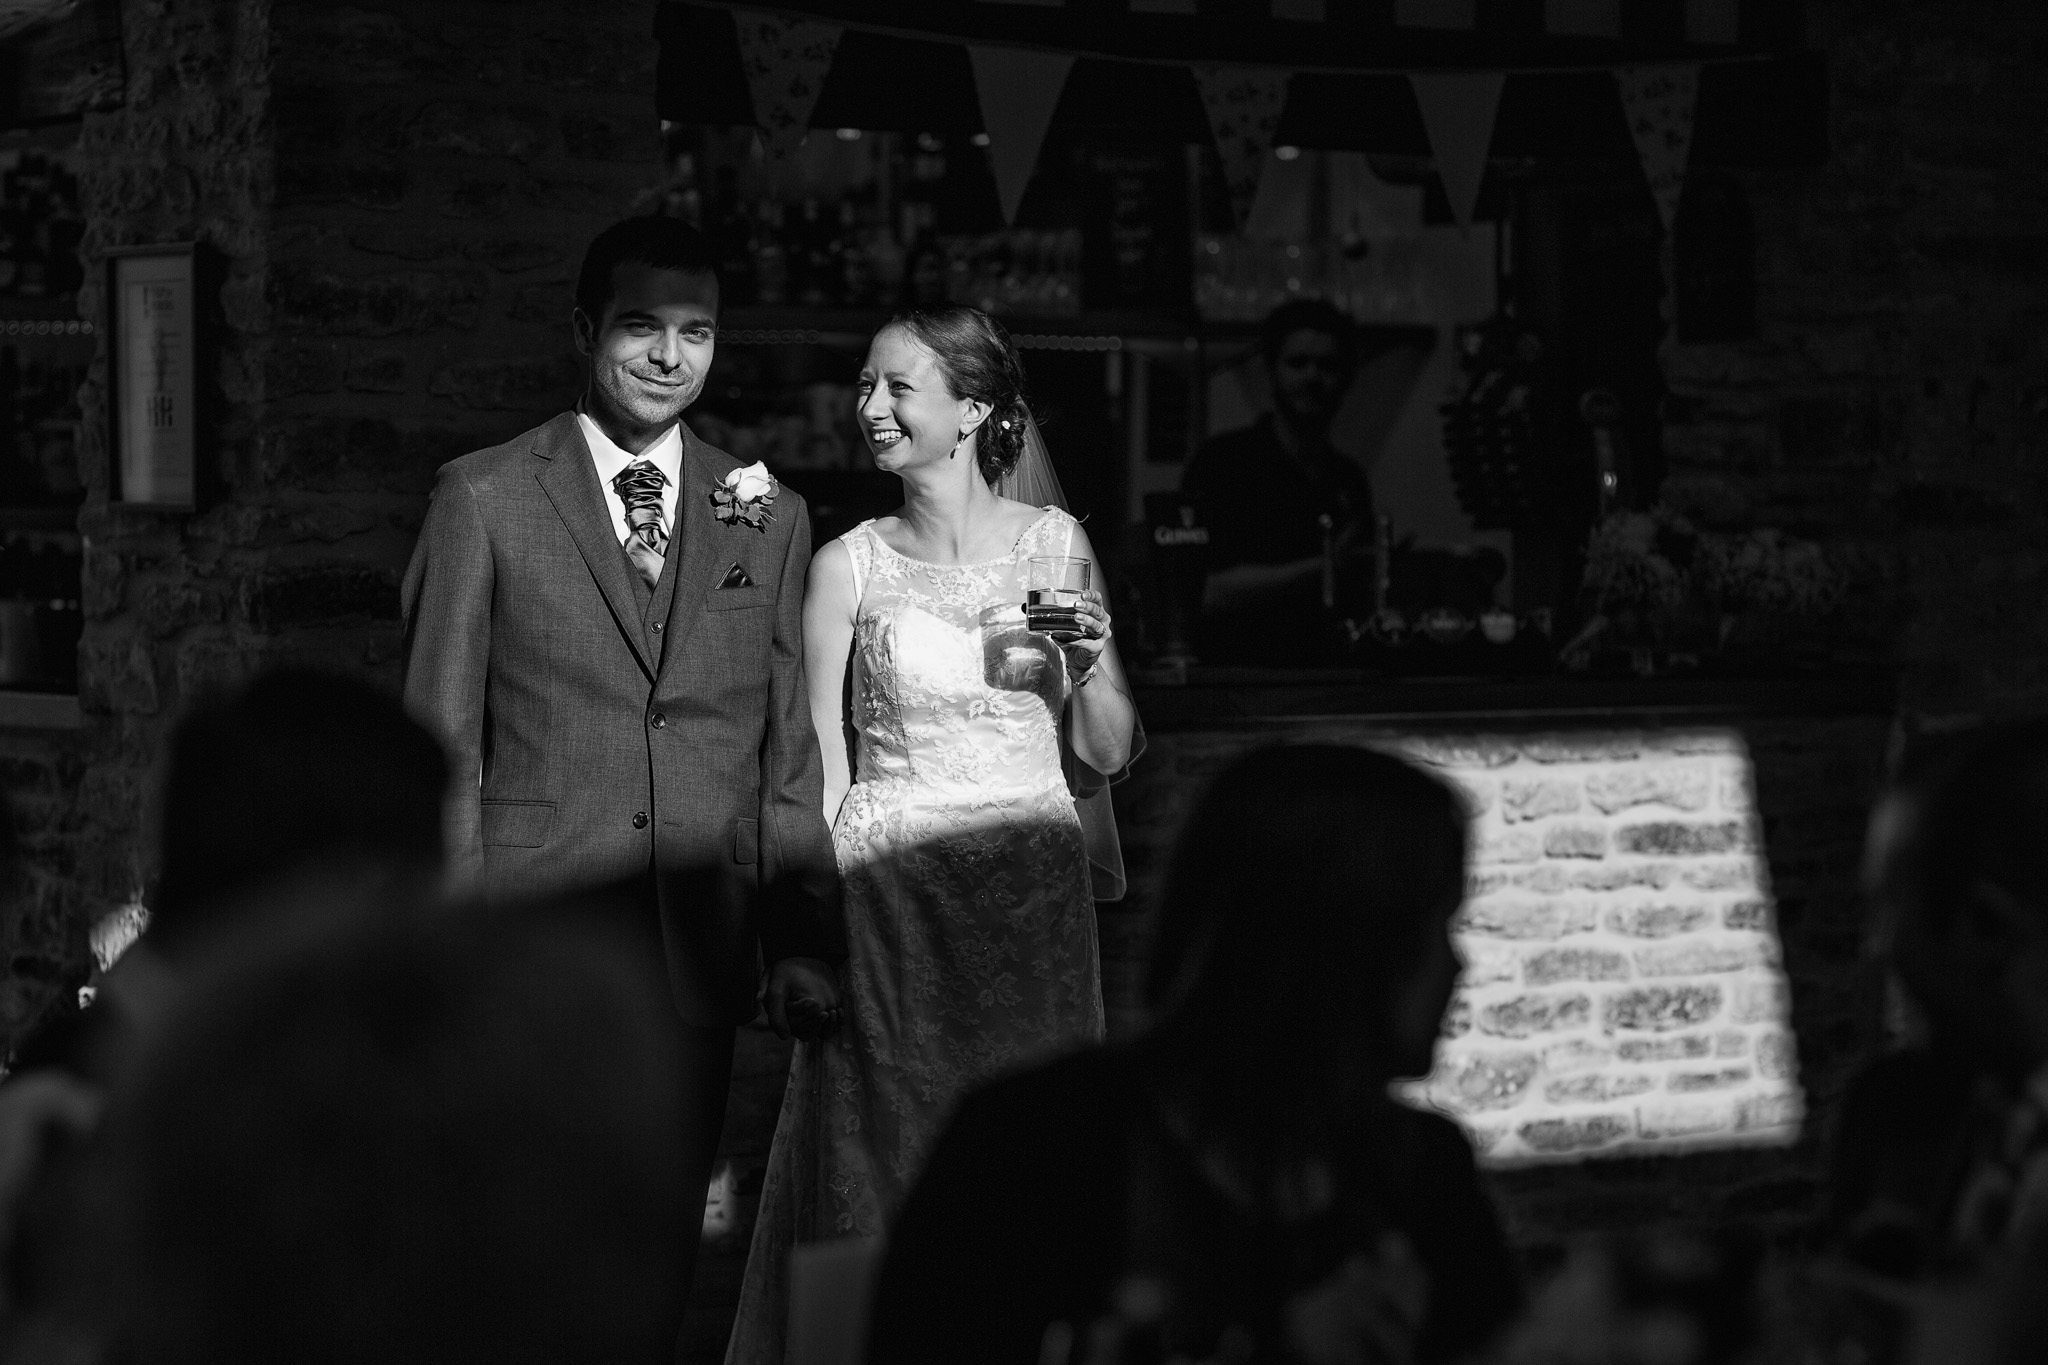 Mark_Barnes_Northern_Ireland_Wedding_Photography_Jack_and_Claire-33.jpg